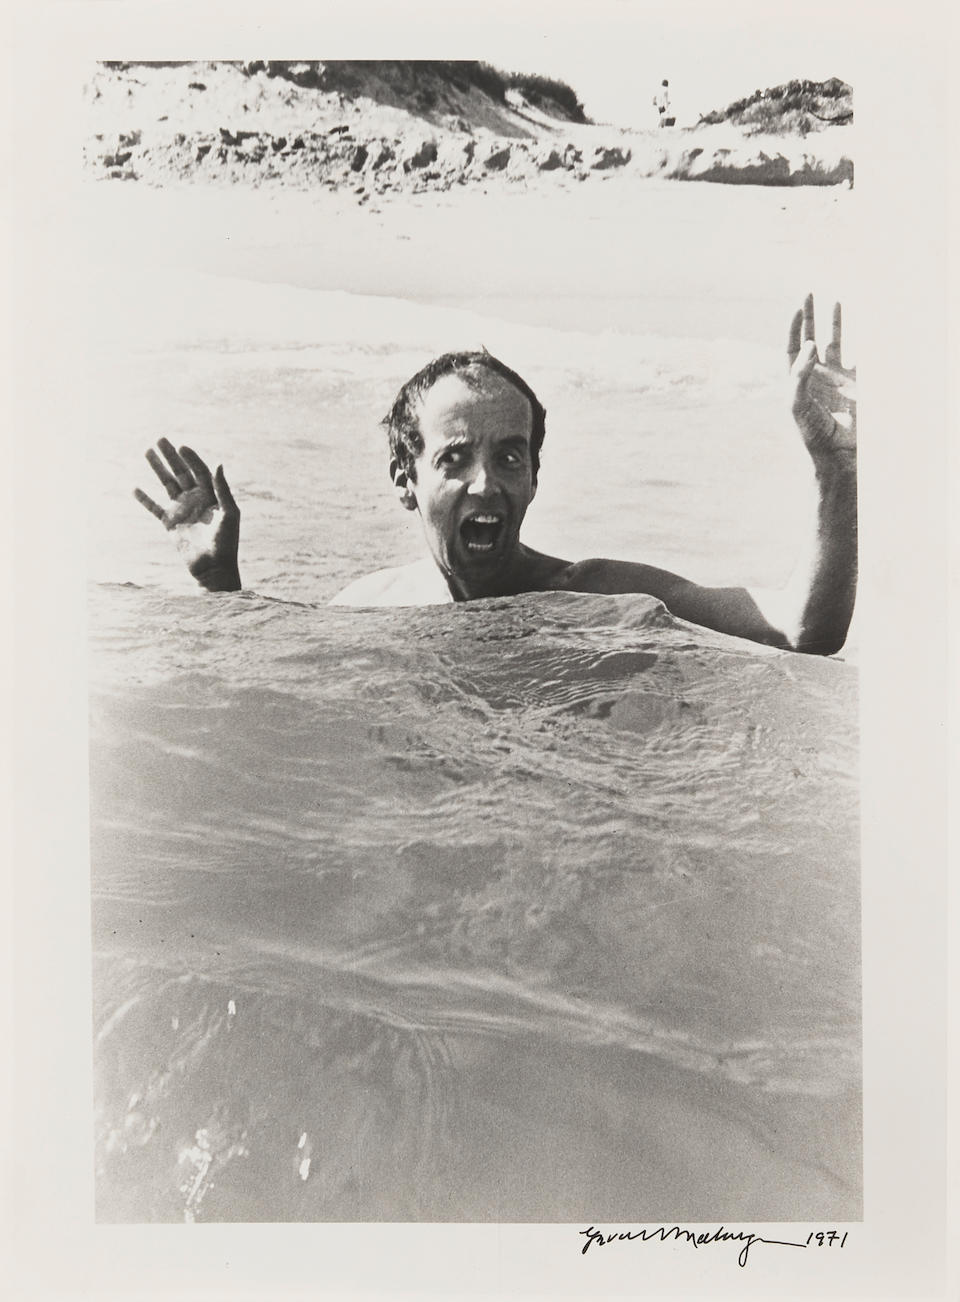 [BURROUGHS, WILLIAM. 1914-1997.] MALANGA, GERARD. B.1943. A Collection of 21 photographs, many including William Burroughs, all gelatin silver prints, all 8 x 10 inches on larger sheets, except where noted, including: